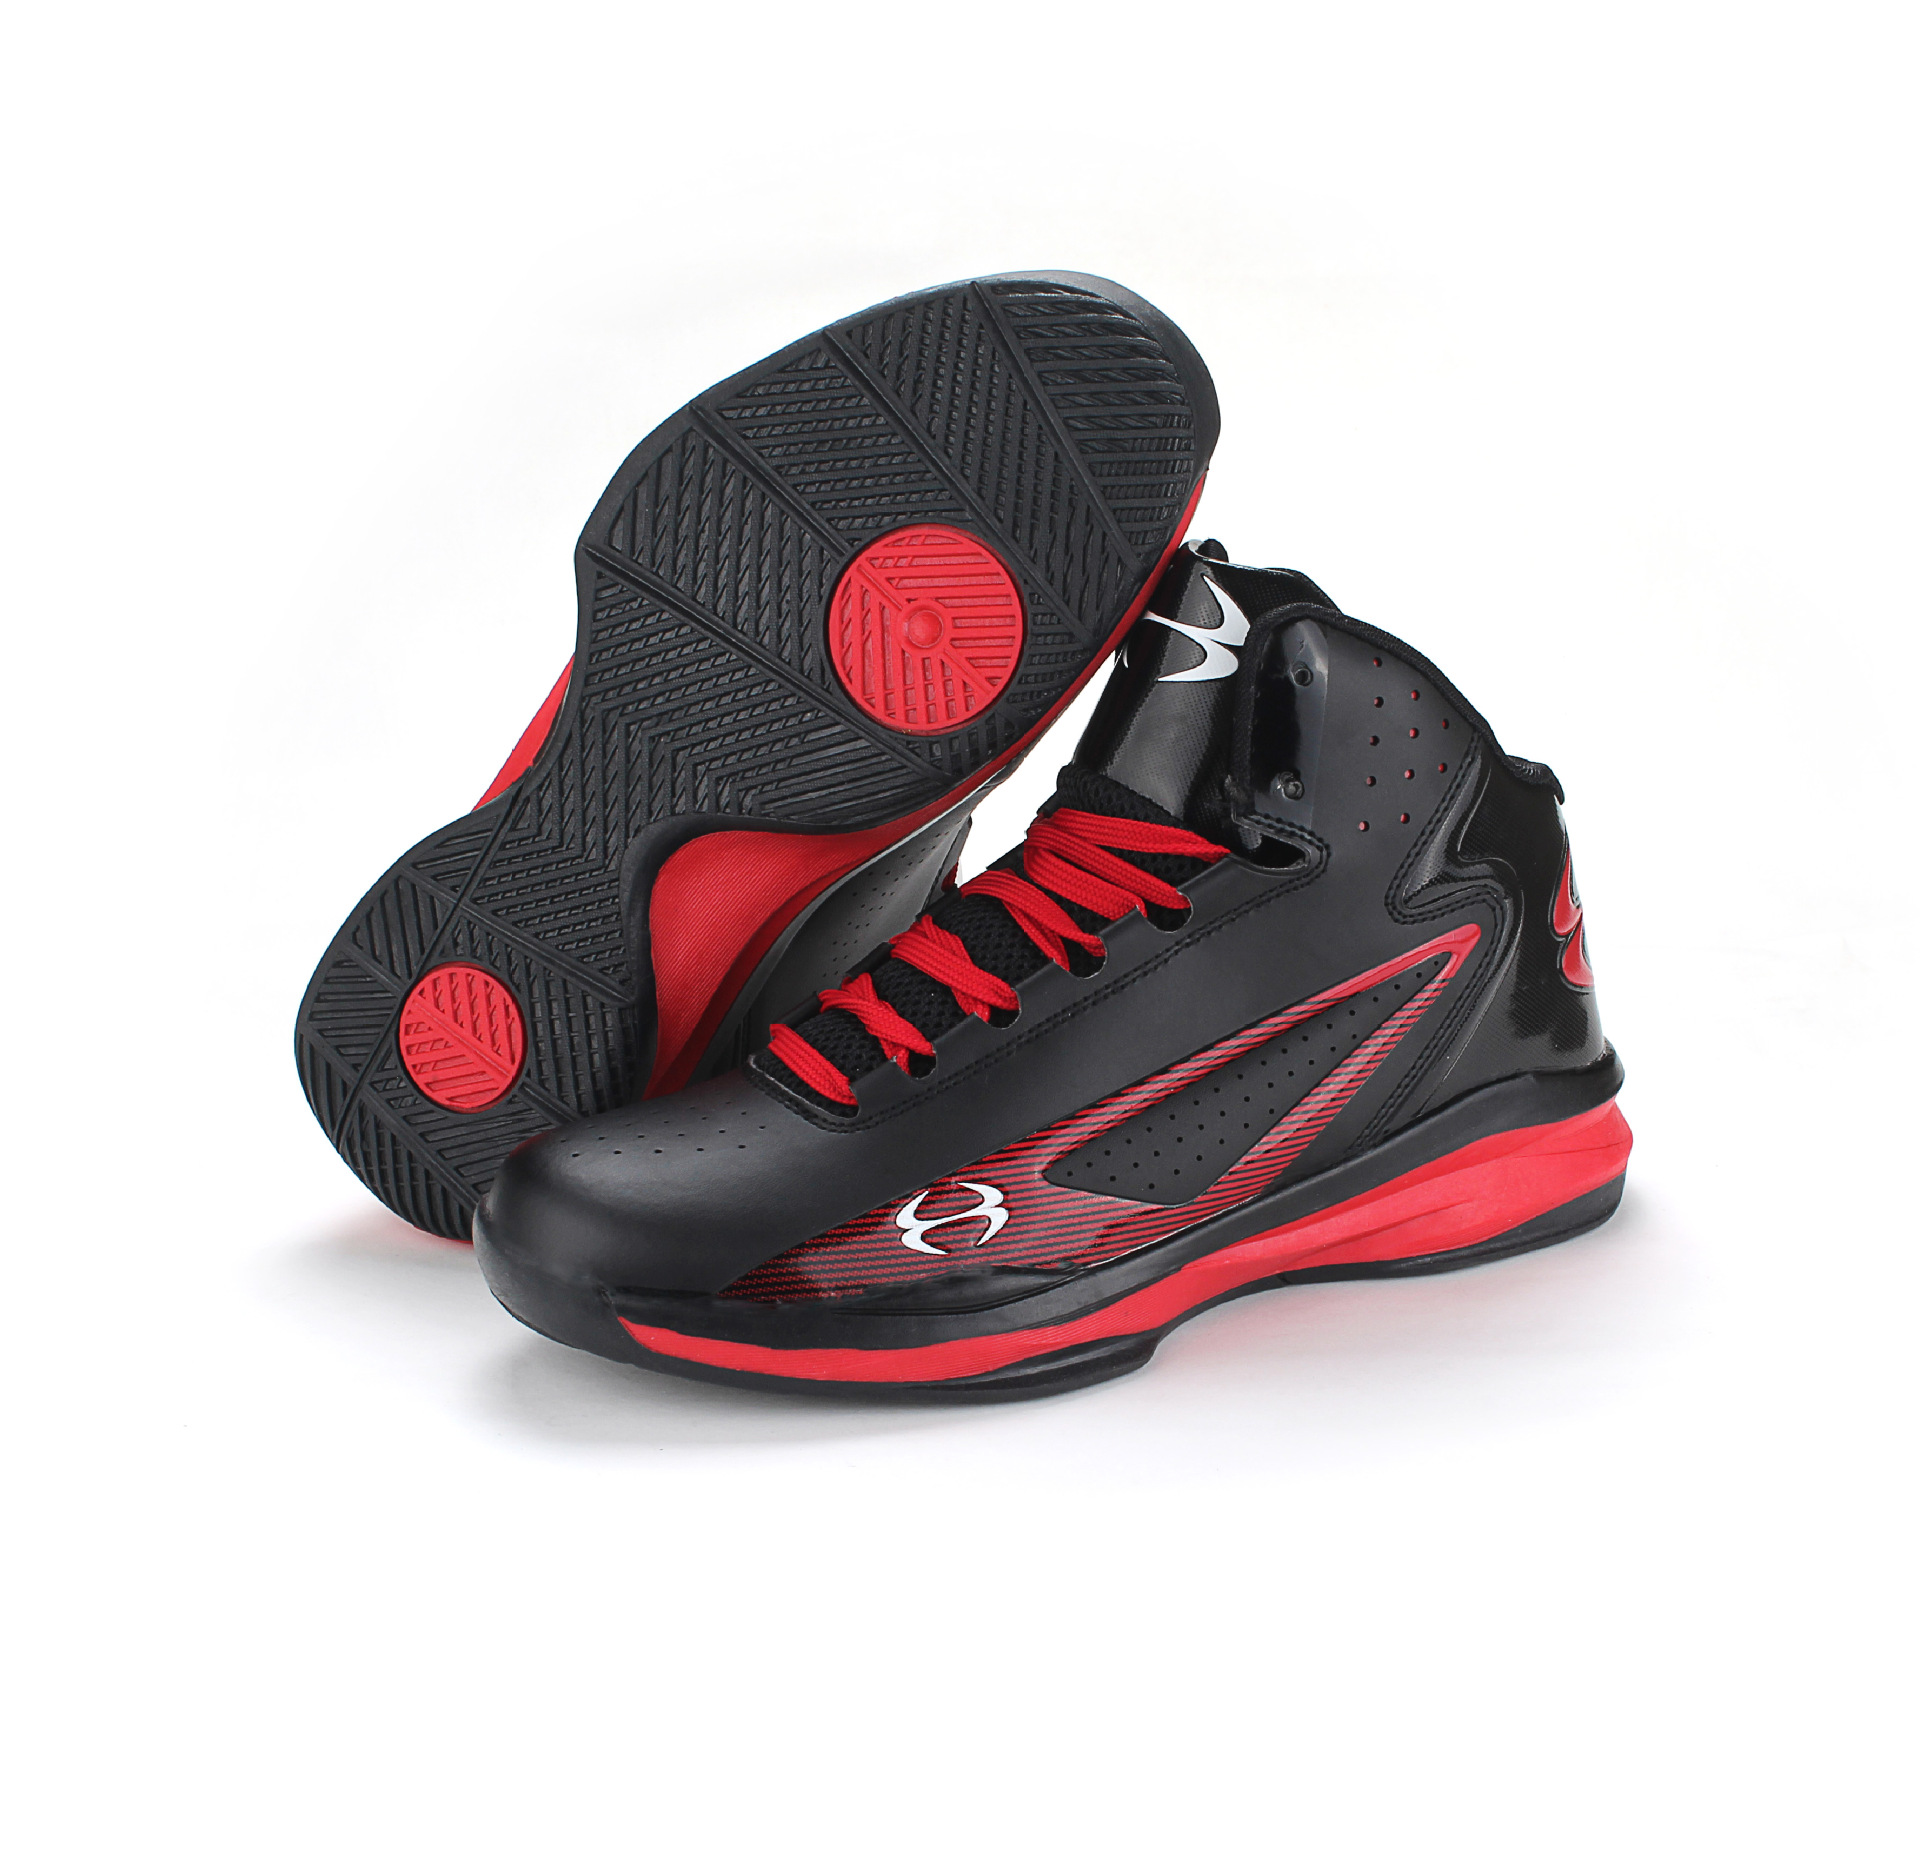 Compare Prices on Free Indoor Basketball Courts- Online Shopping ...